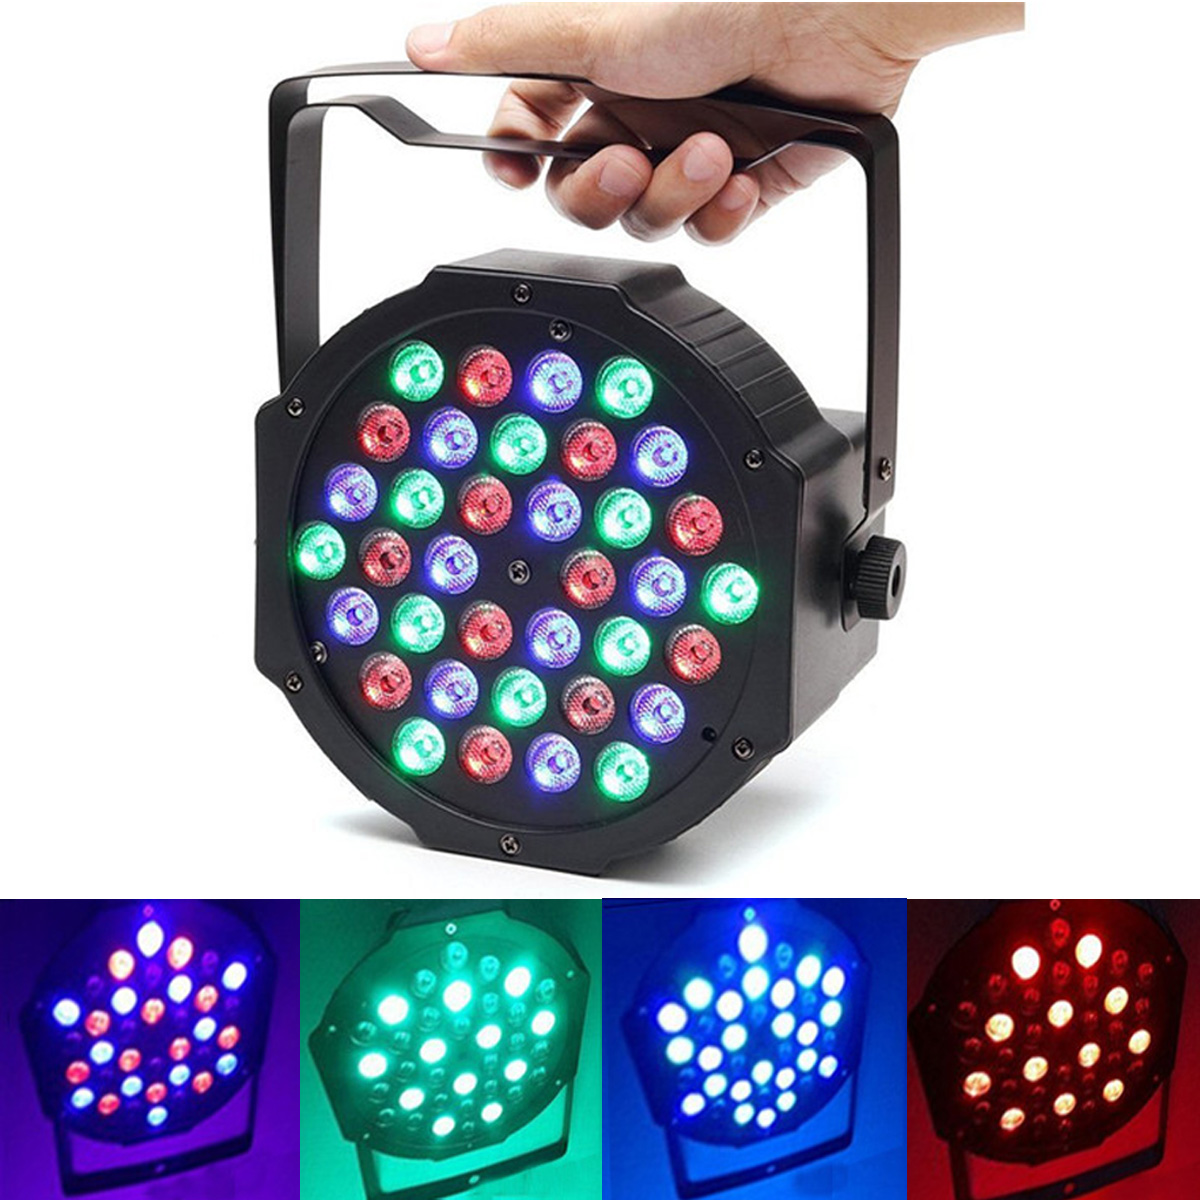 Stage Light 36W 36 LED RGB Par Light DMX512 Master Slave LED Flat DJ Equipment Controller Discos KTV Music Light djeco игра eduludo фигуры с 3 лет